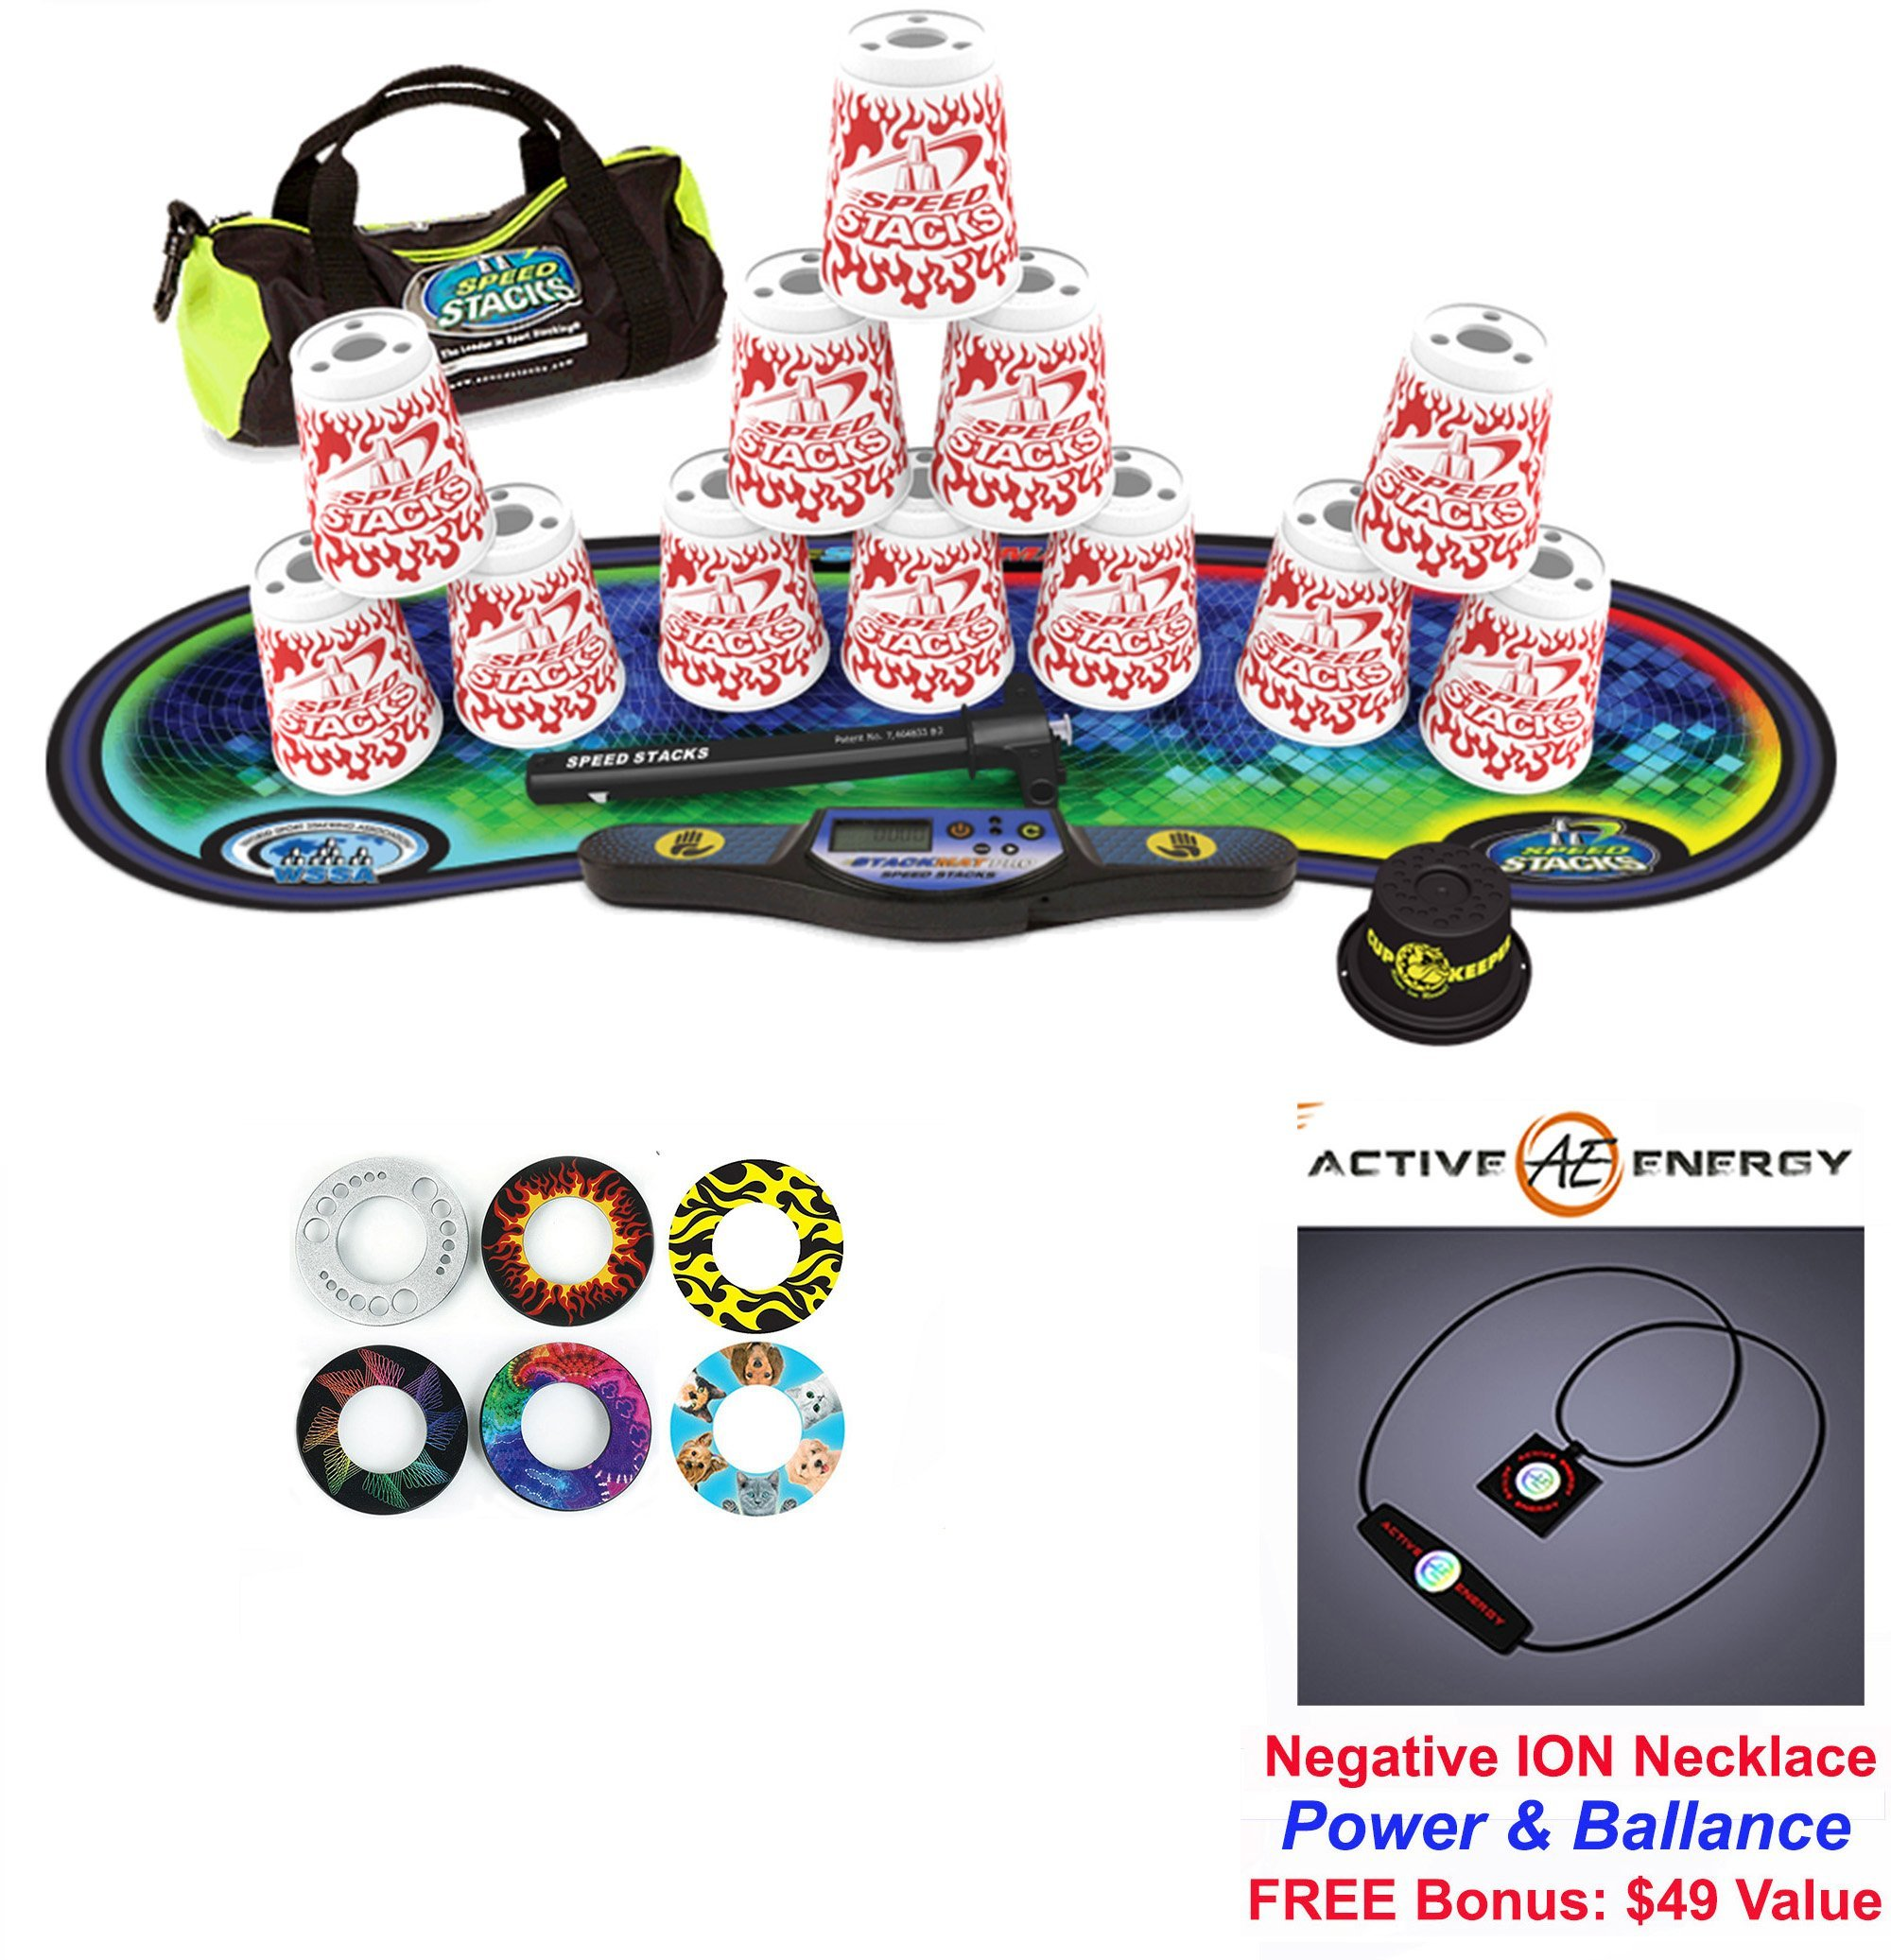 Speed Stacks Custom Combo Set - The Works: 12 WHITE FLAMES 4'' Cups, Cup Keeper, Quick Release Stem, Pro Timer, Gen 3 Premium VOXEL GLOW Mat, 6 Snap Tops, Gear Bag + FREE: Active Energy Necklace $49